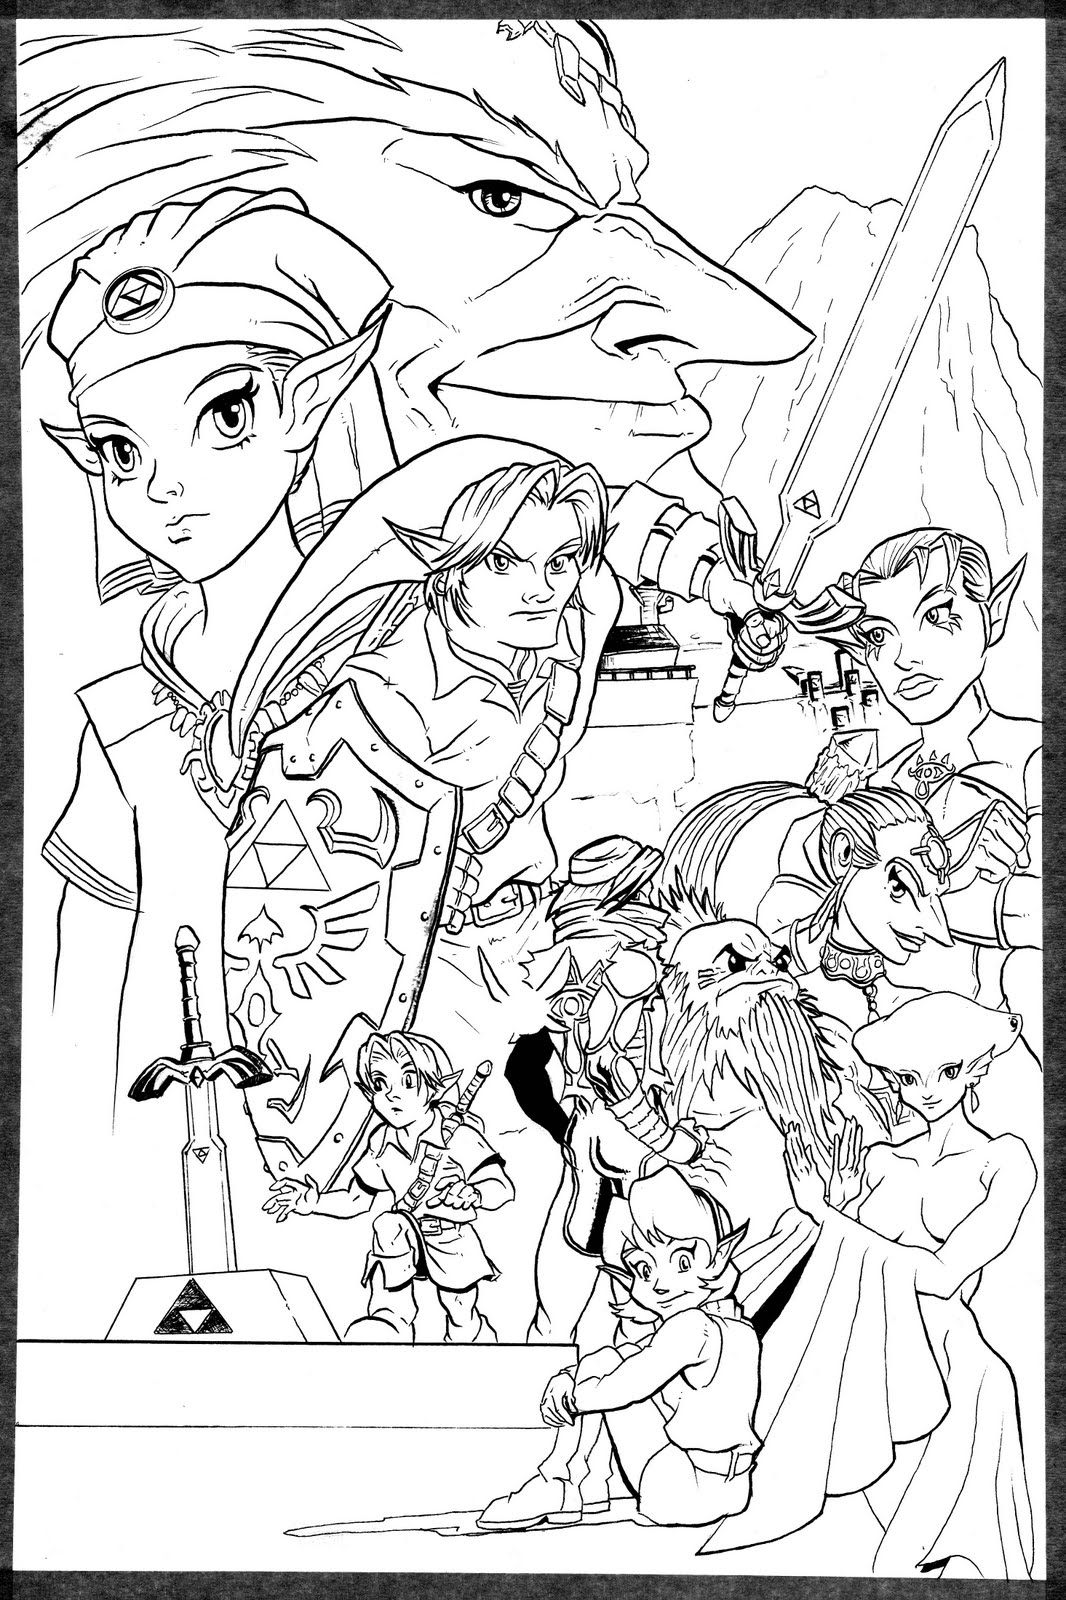 Zelda From Ocarena Of Time - Free Colouring Pages